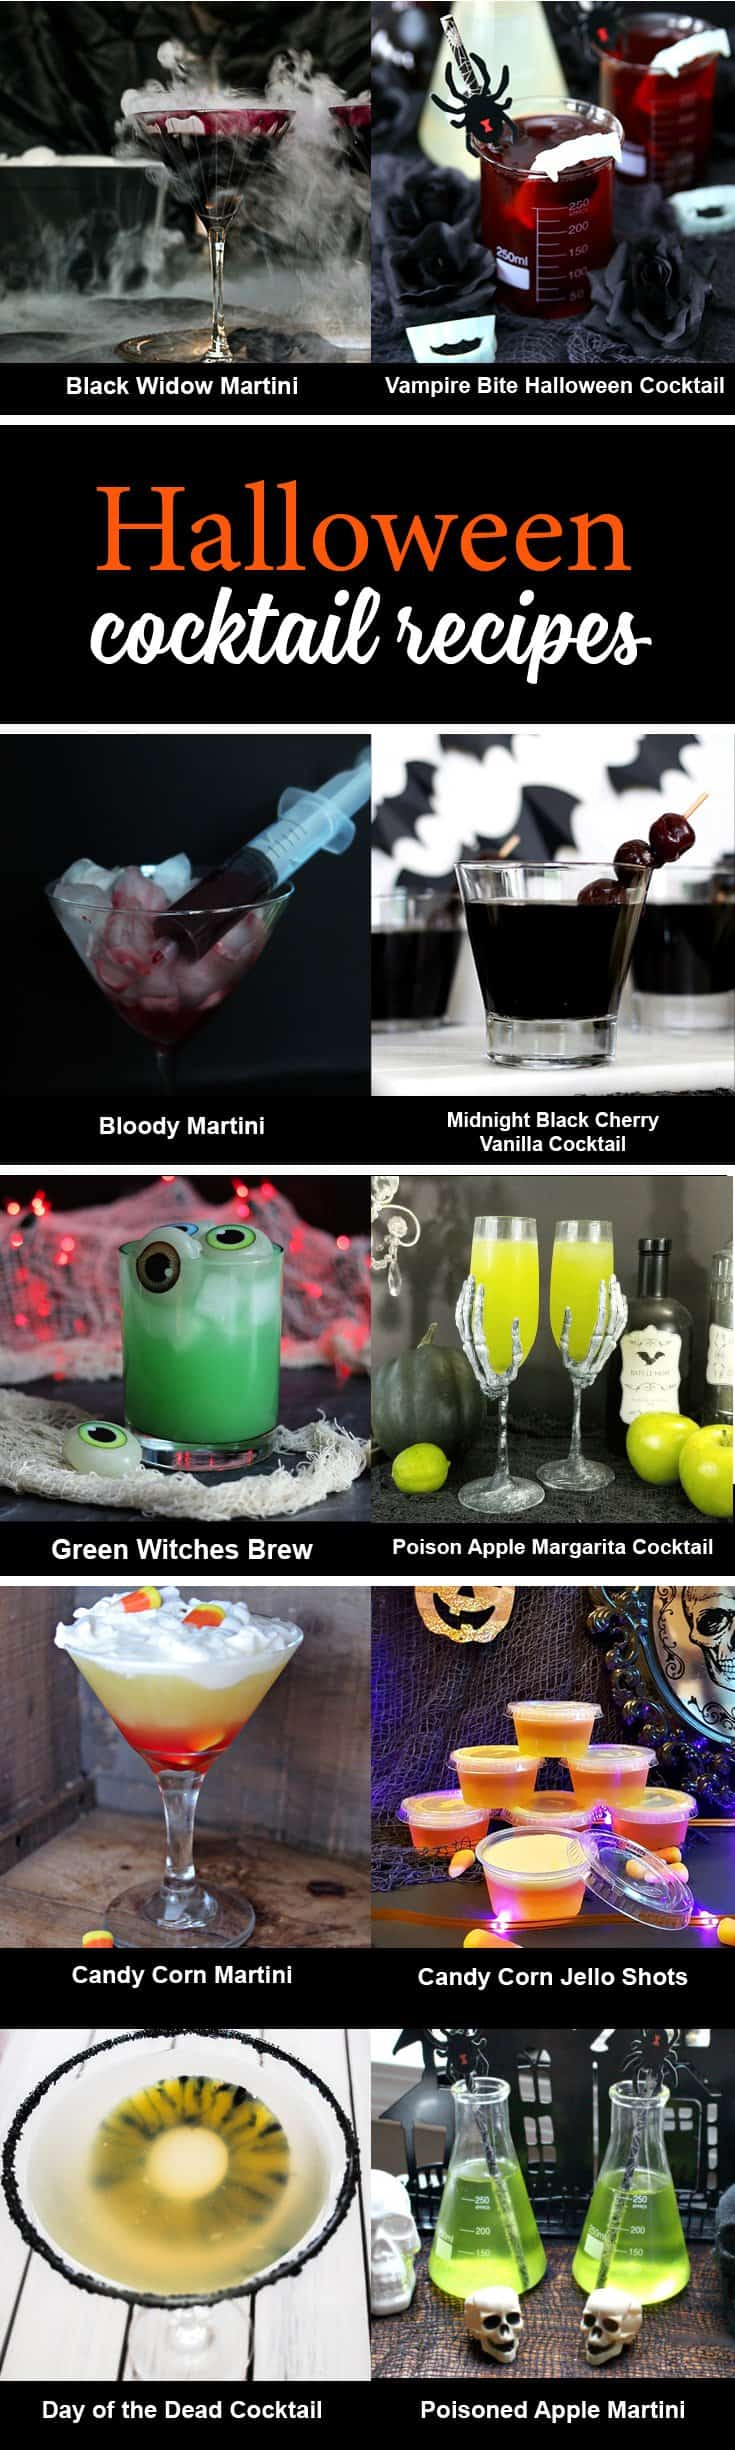 Green Witches Brew Halloween Cocktail Creative Ramblings